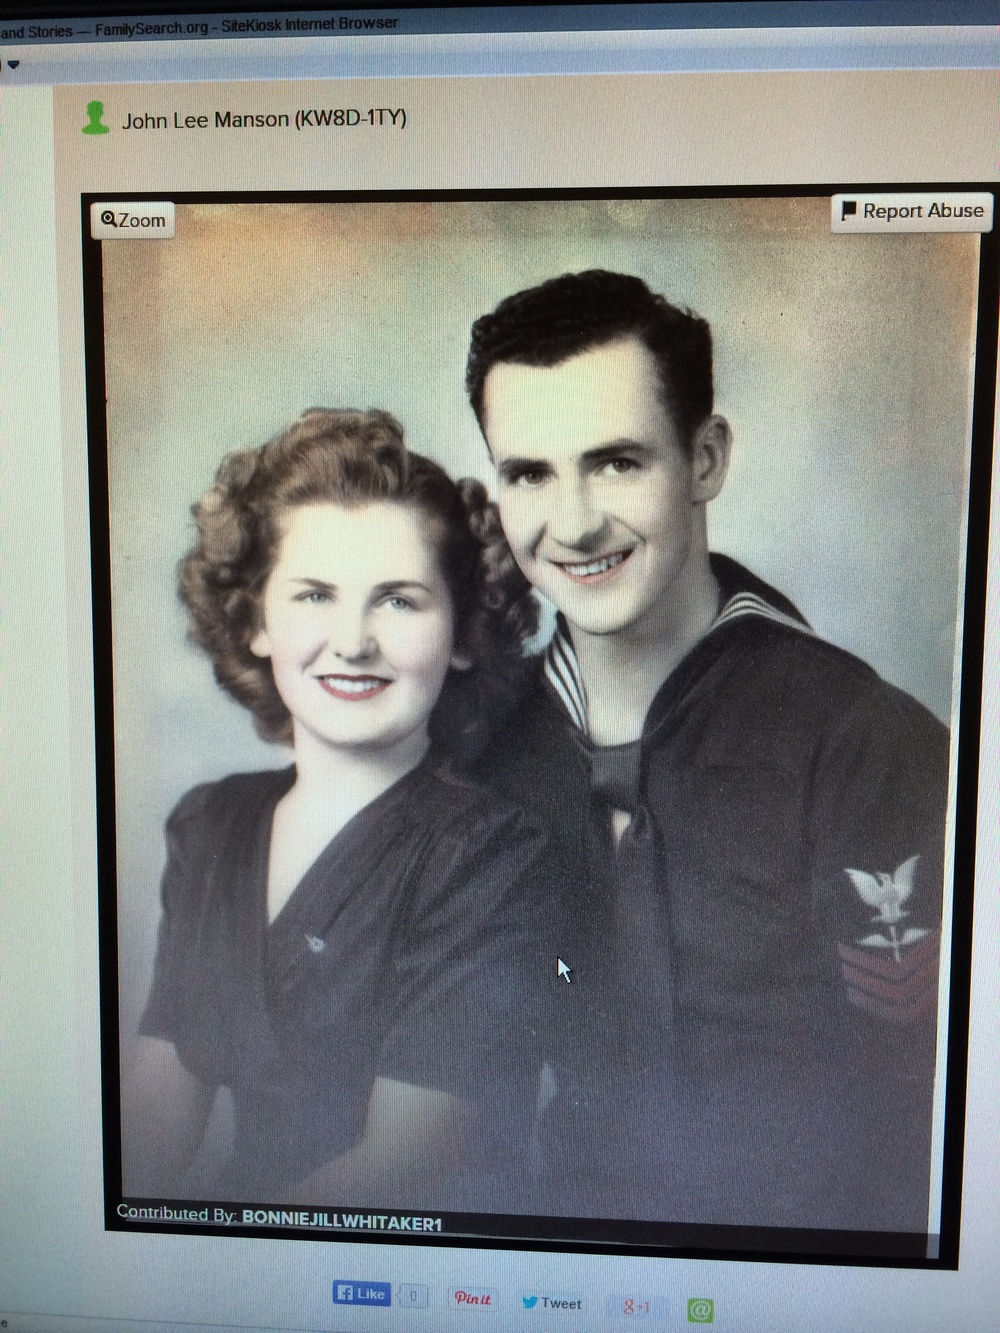 John was an Airplane Mechanic in the Navy and June was Miss Bellingham.